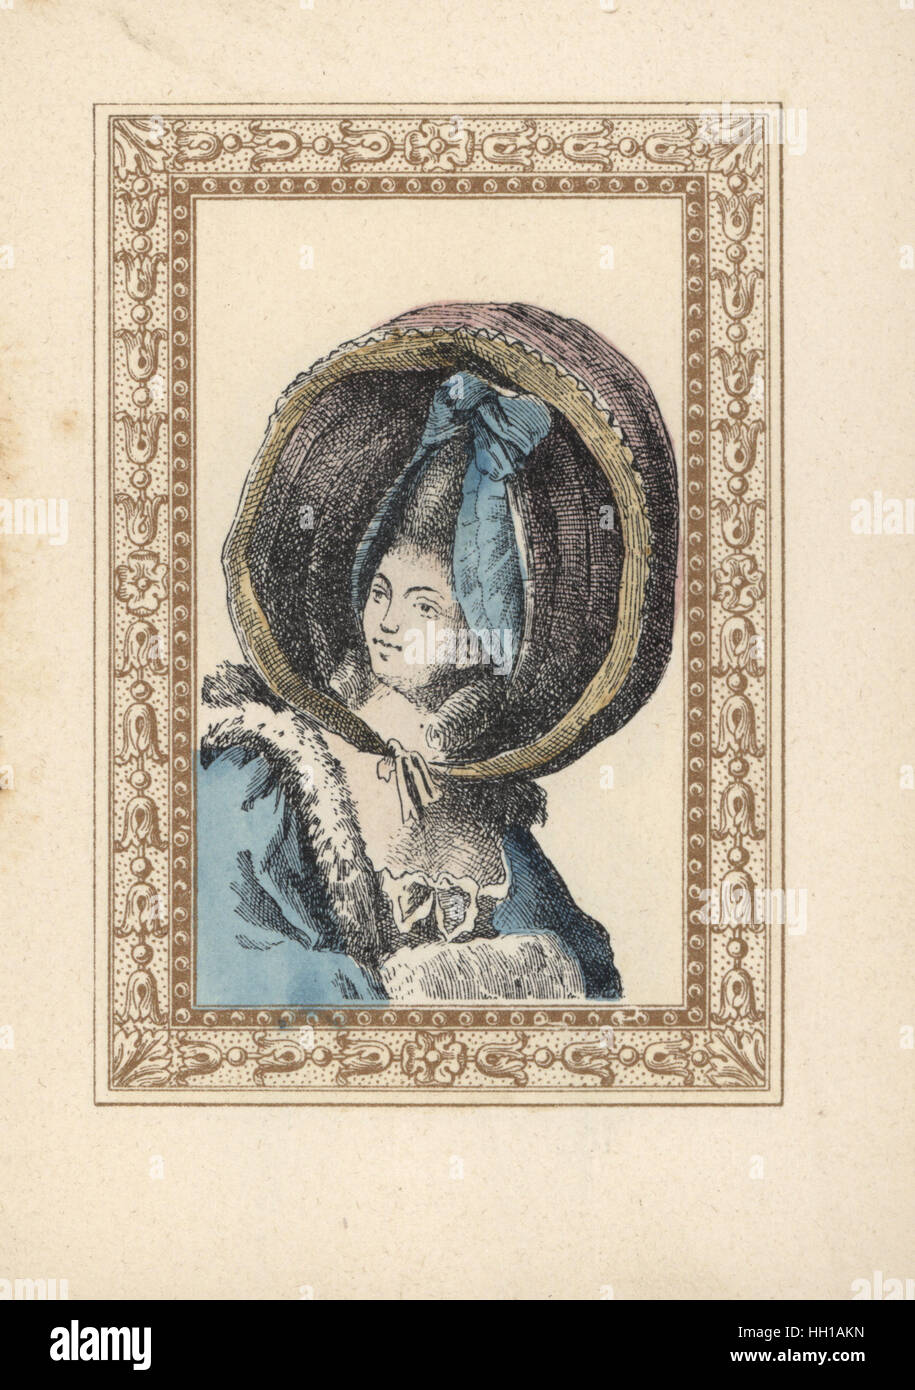 Woman in a round bonnet with ribbon rosette and two ringlets. The bonnet is called a turned-up calash, Caleche retroussee, - Stock Image